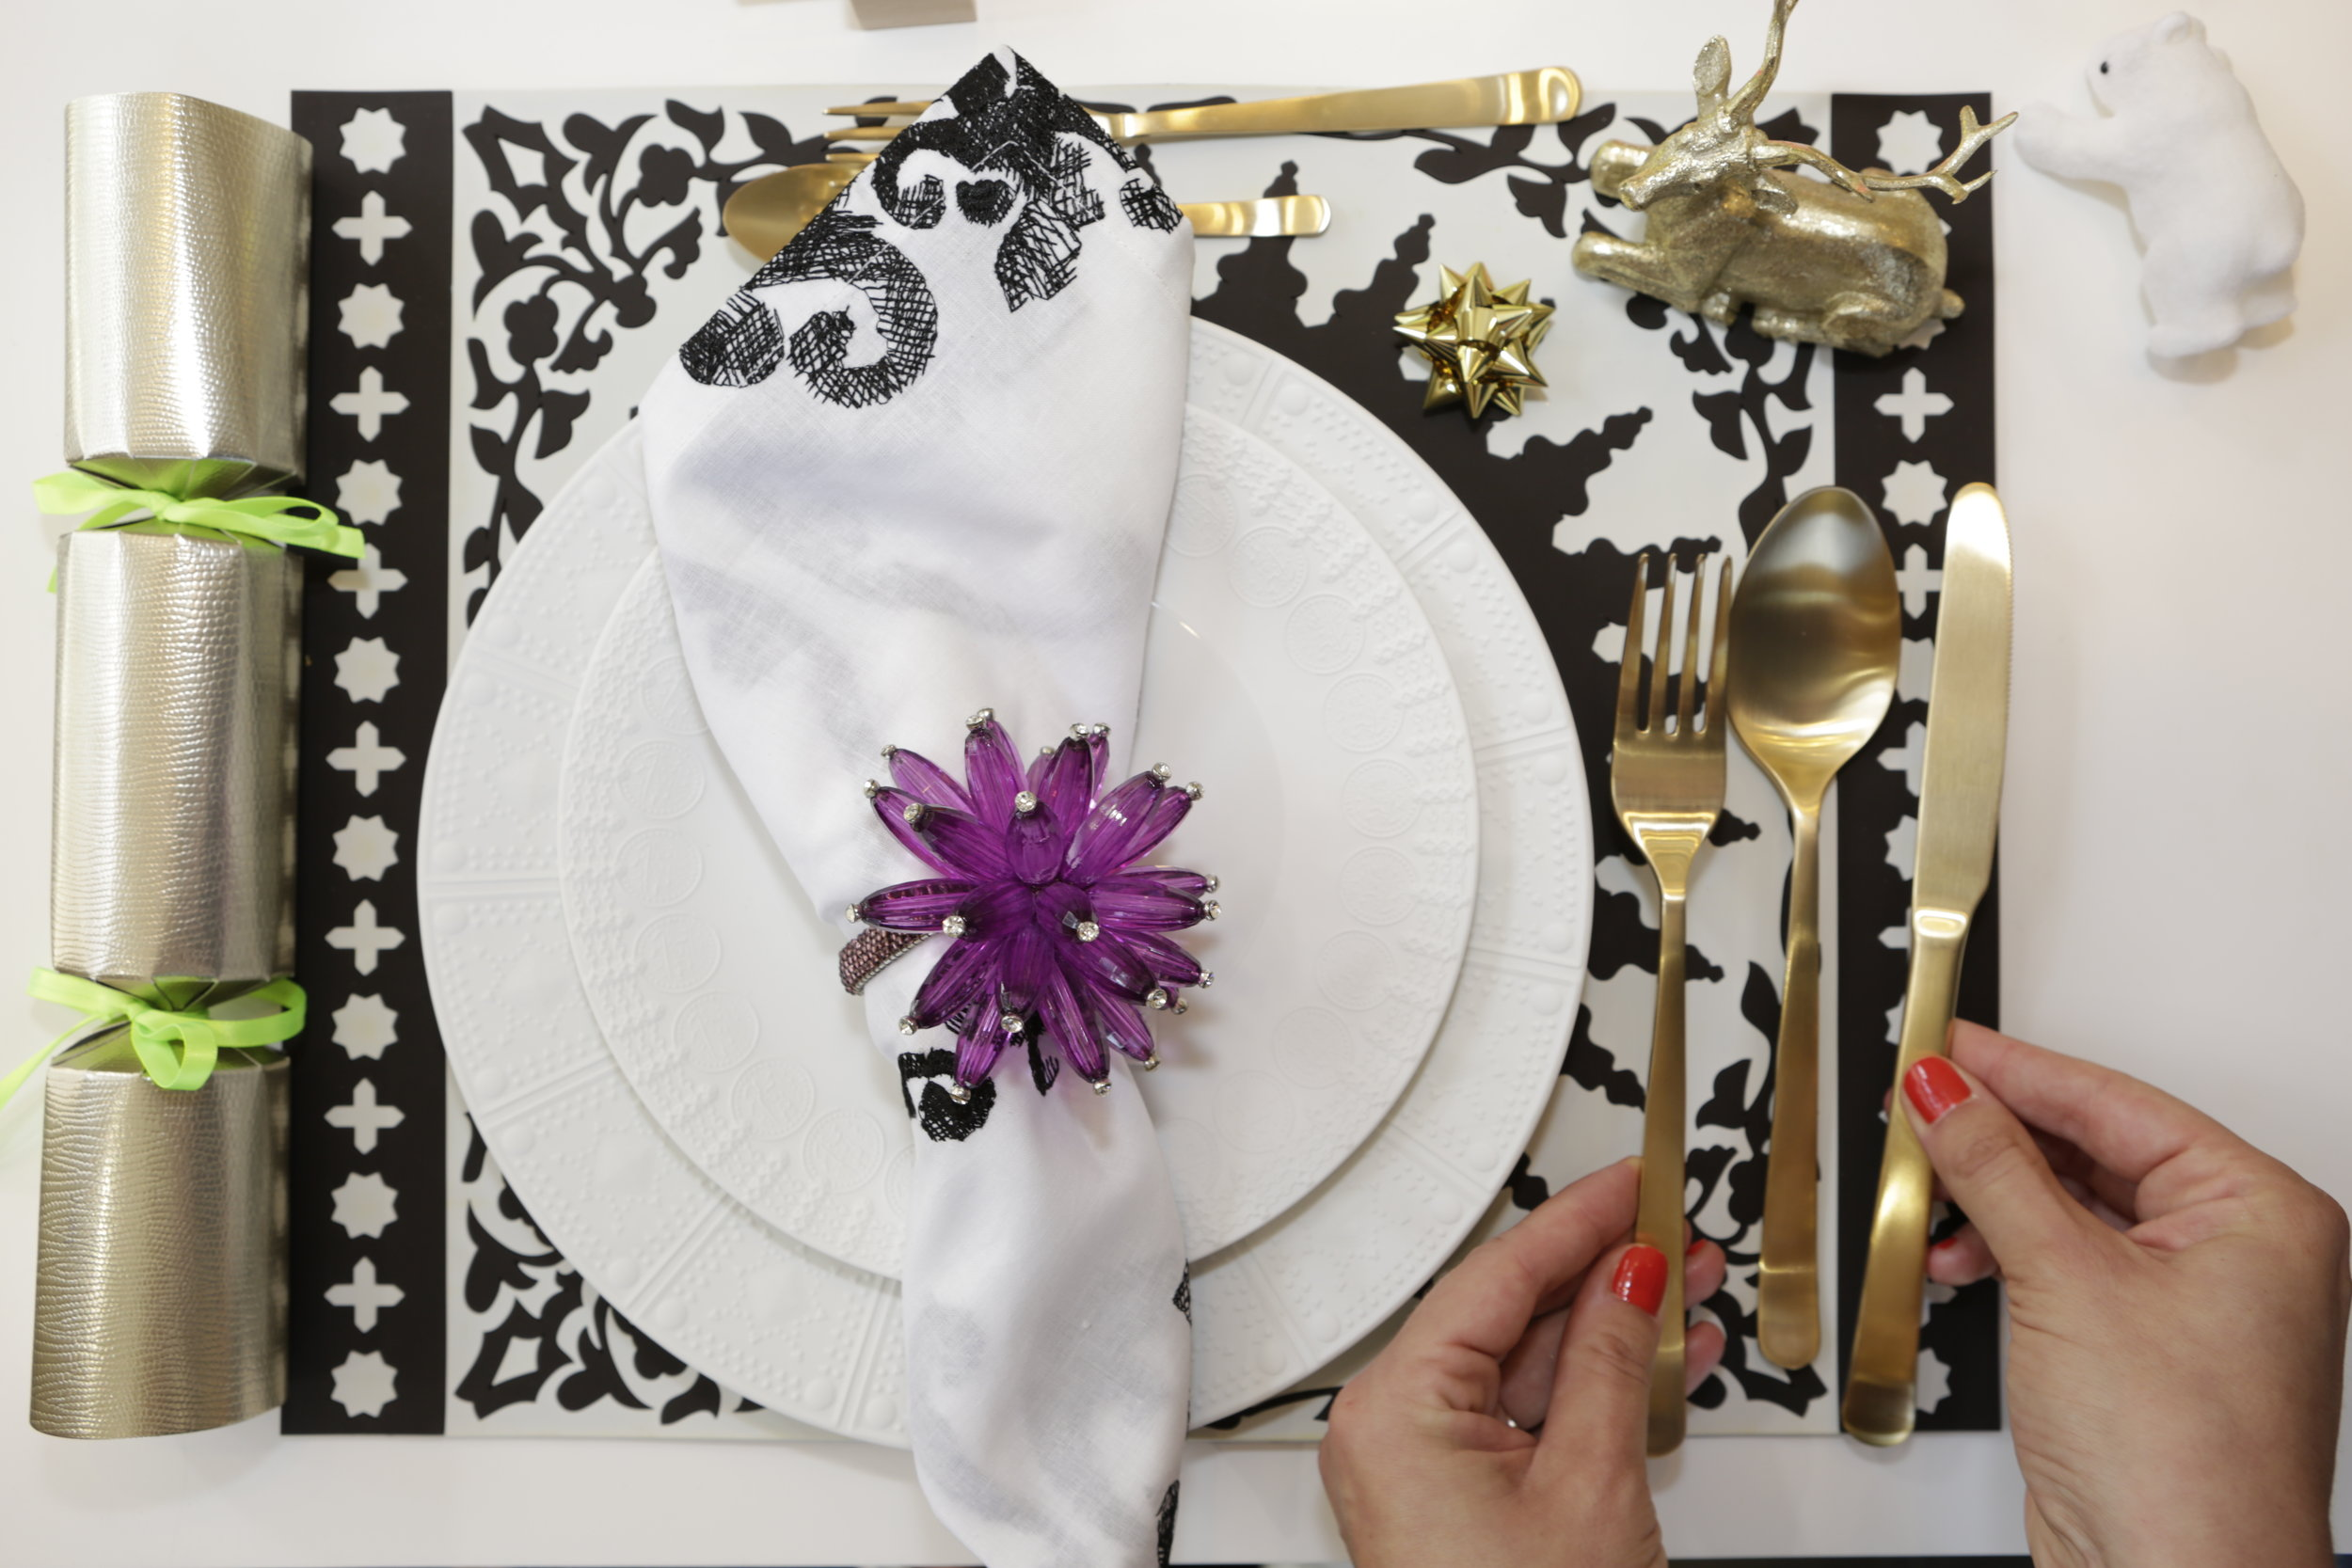 Monochrome with a touch of purple, because well, Pantone colour of the year and all! PS: That bloody knife went rogue again...